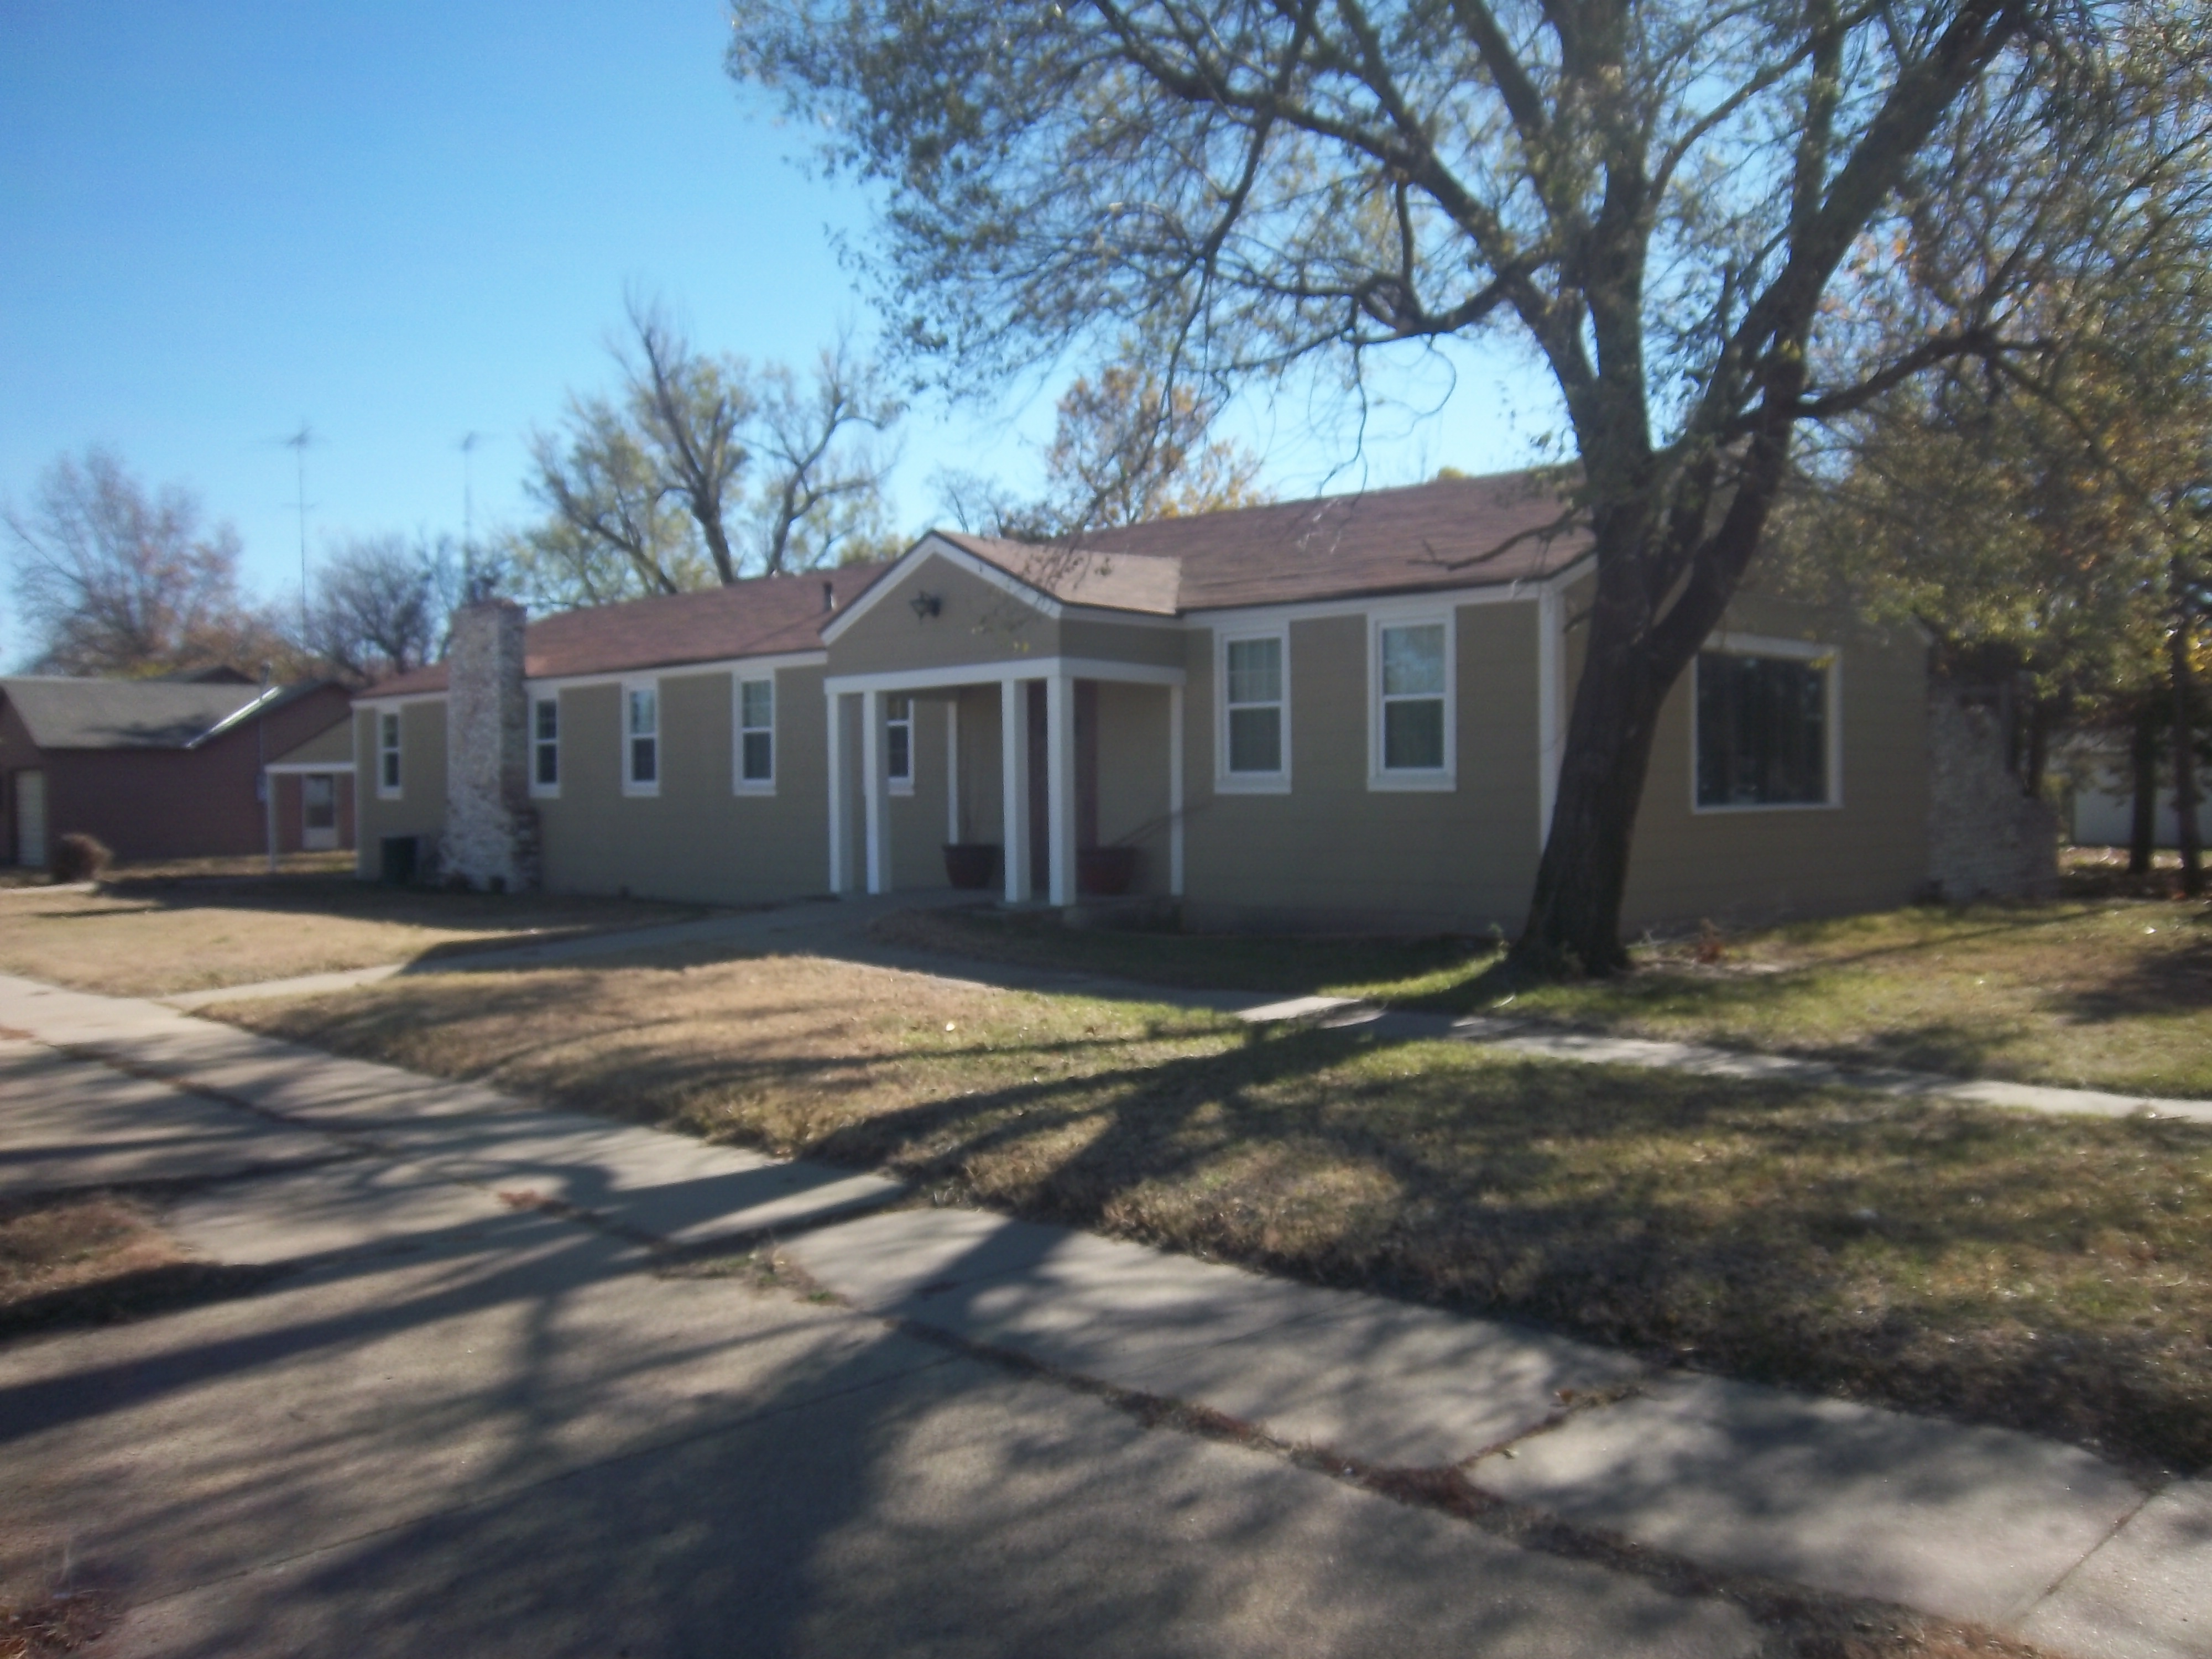 302 E. 4th Street, St. John, Kansas 67576